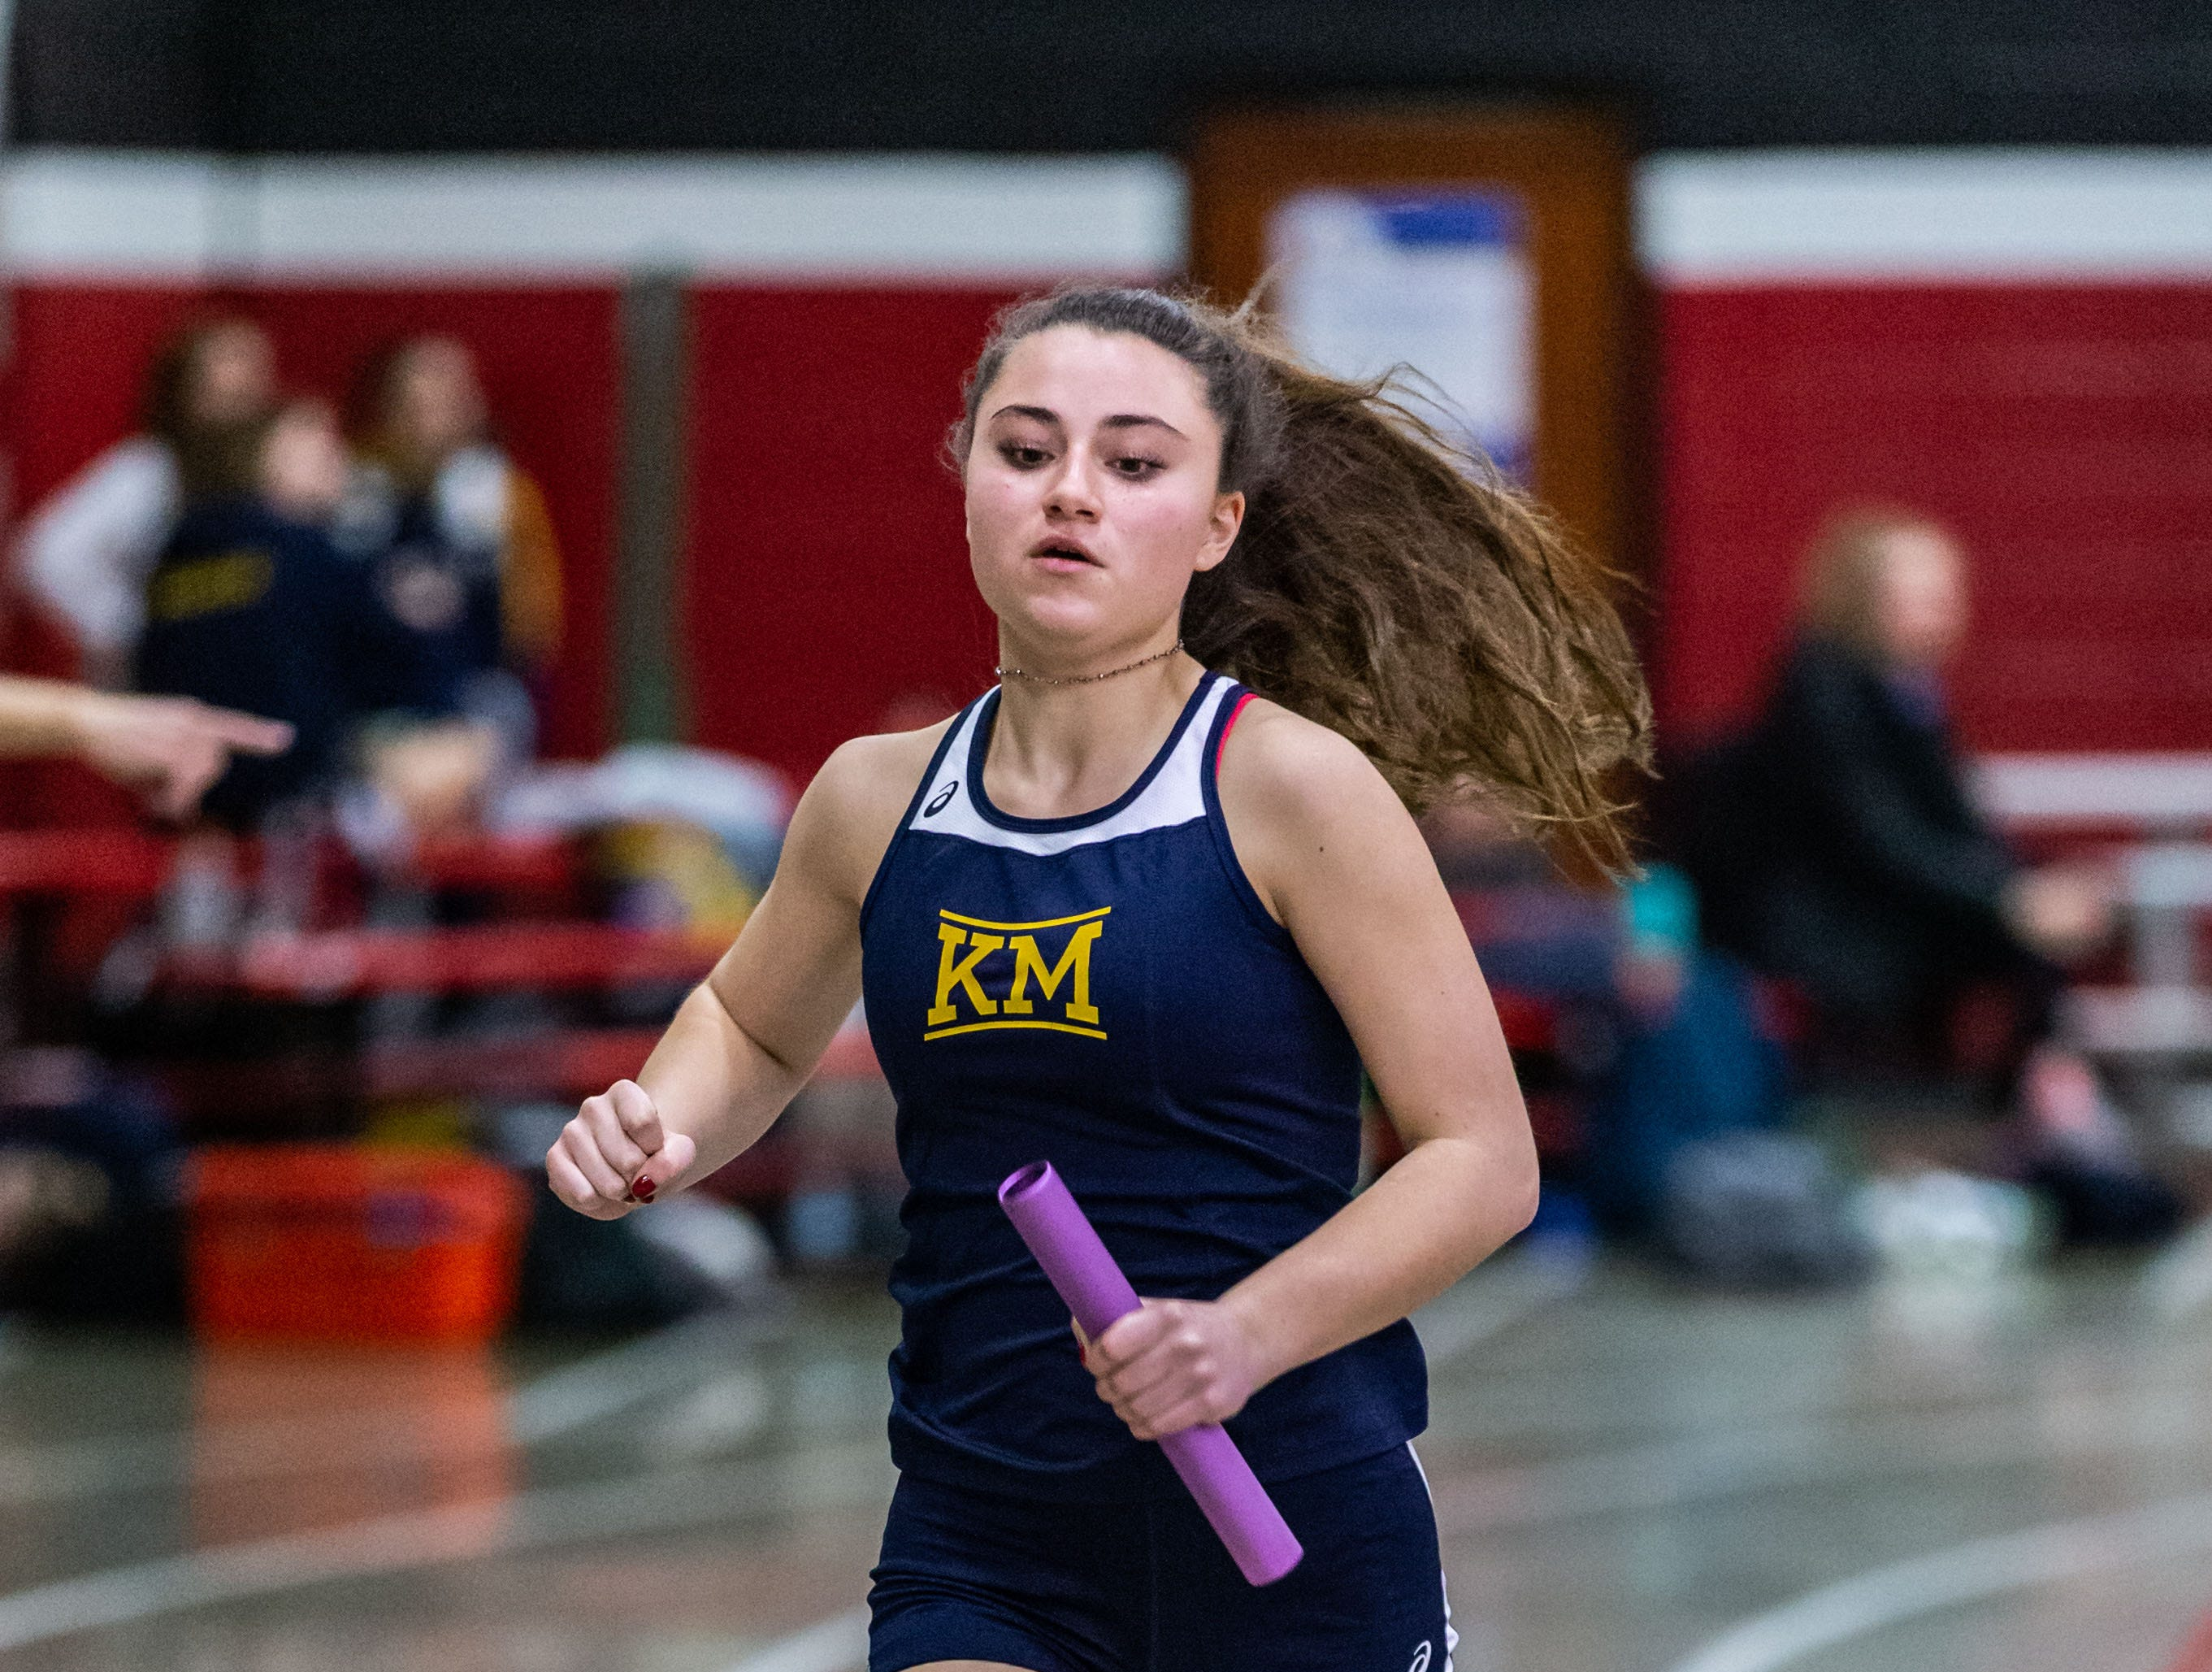 Kettle Moraine's Olivia Hester competes in the 4x440 yard relay at the Peter Rempe Cardinal Relays hosted by Waukesha South on Thursday, March 21, 2019. Kettle Moraine placed second in the event with a time of 4:31.29.